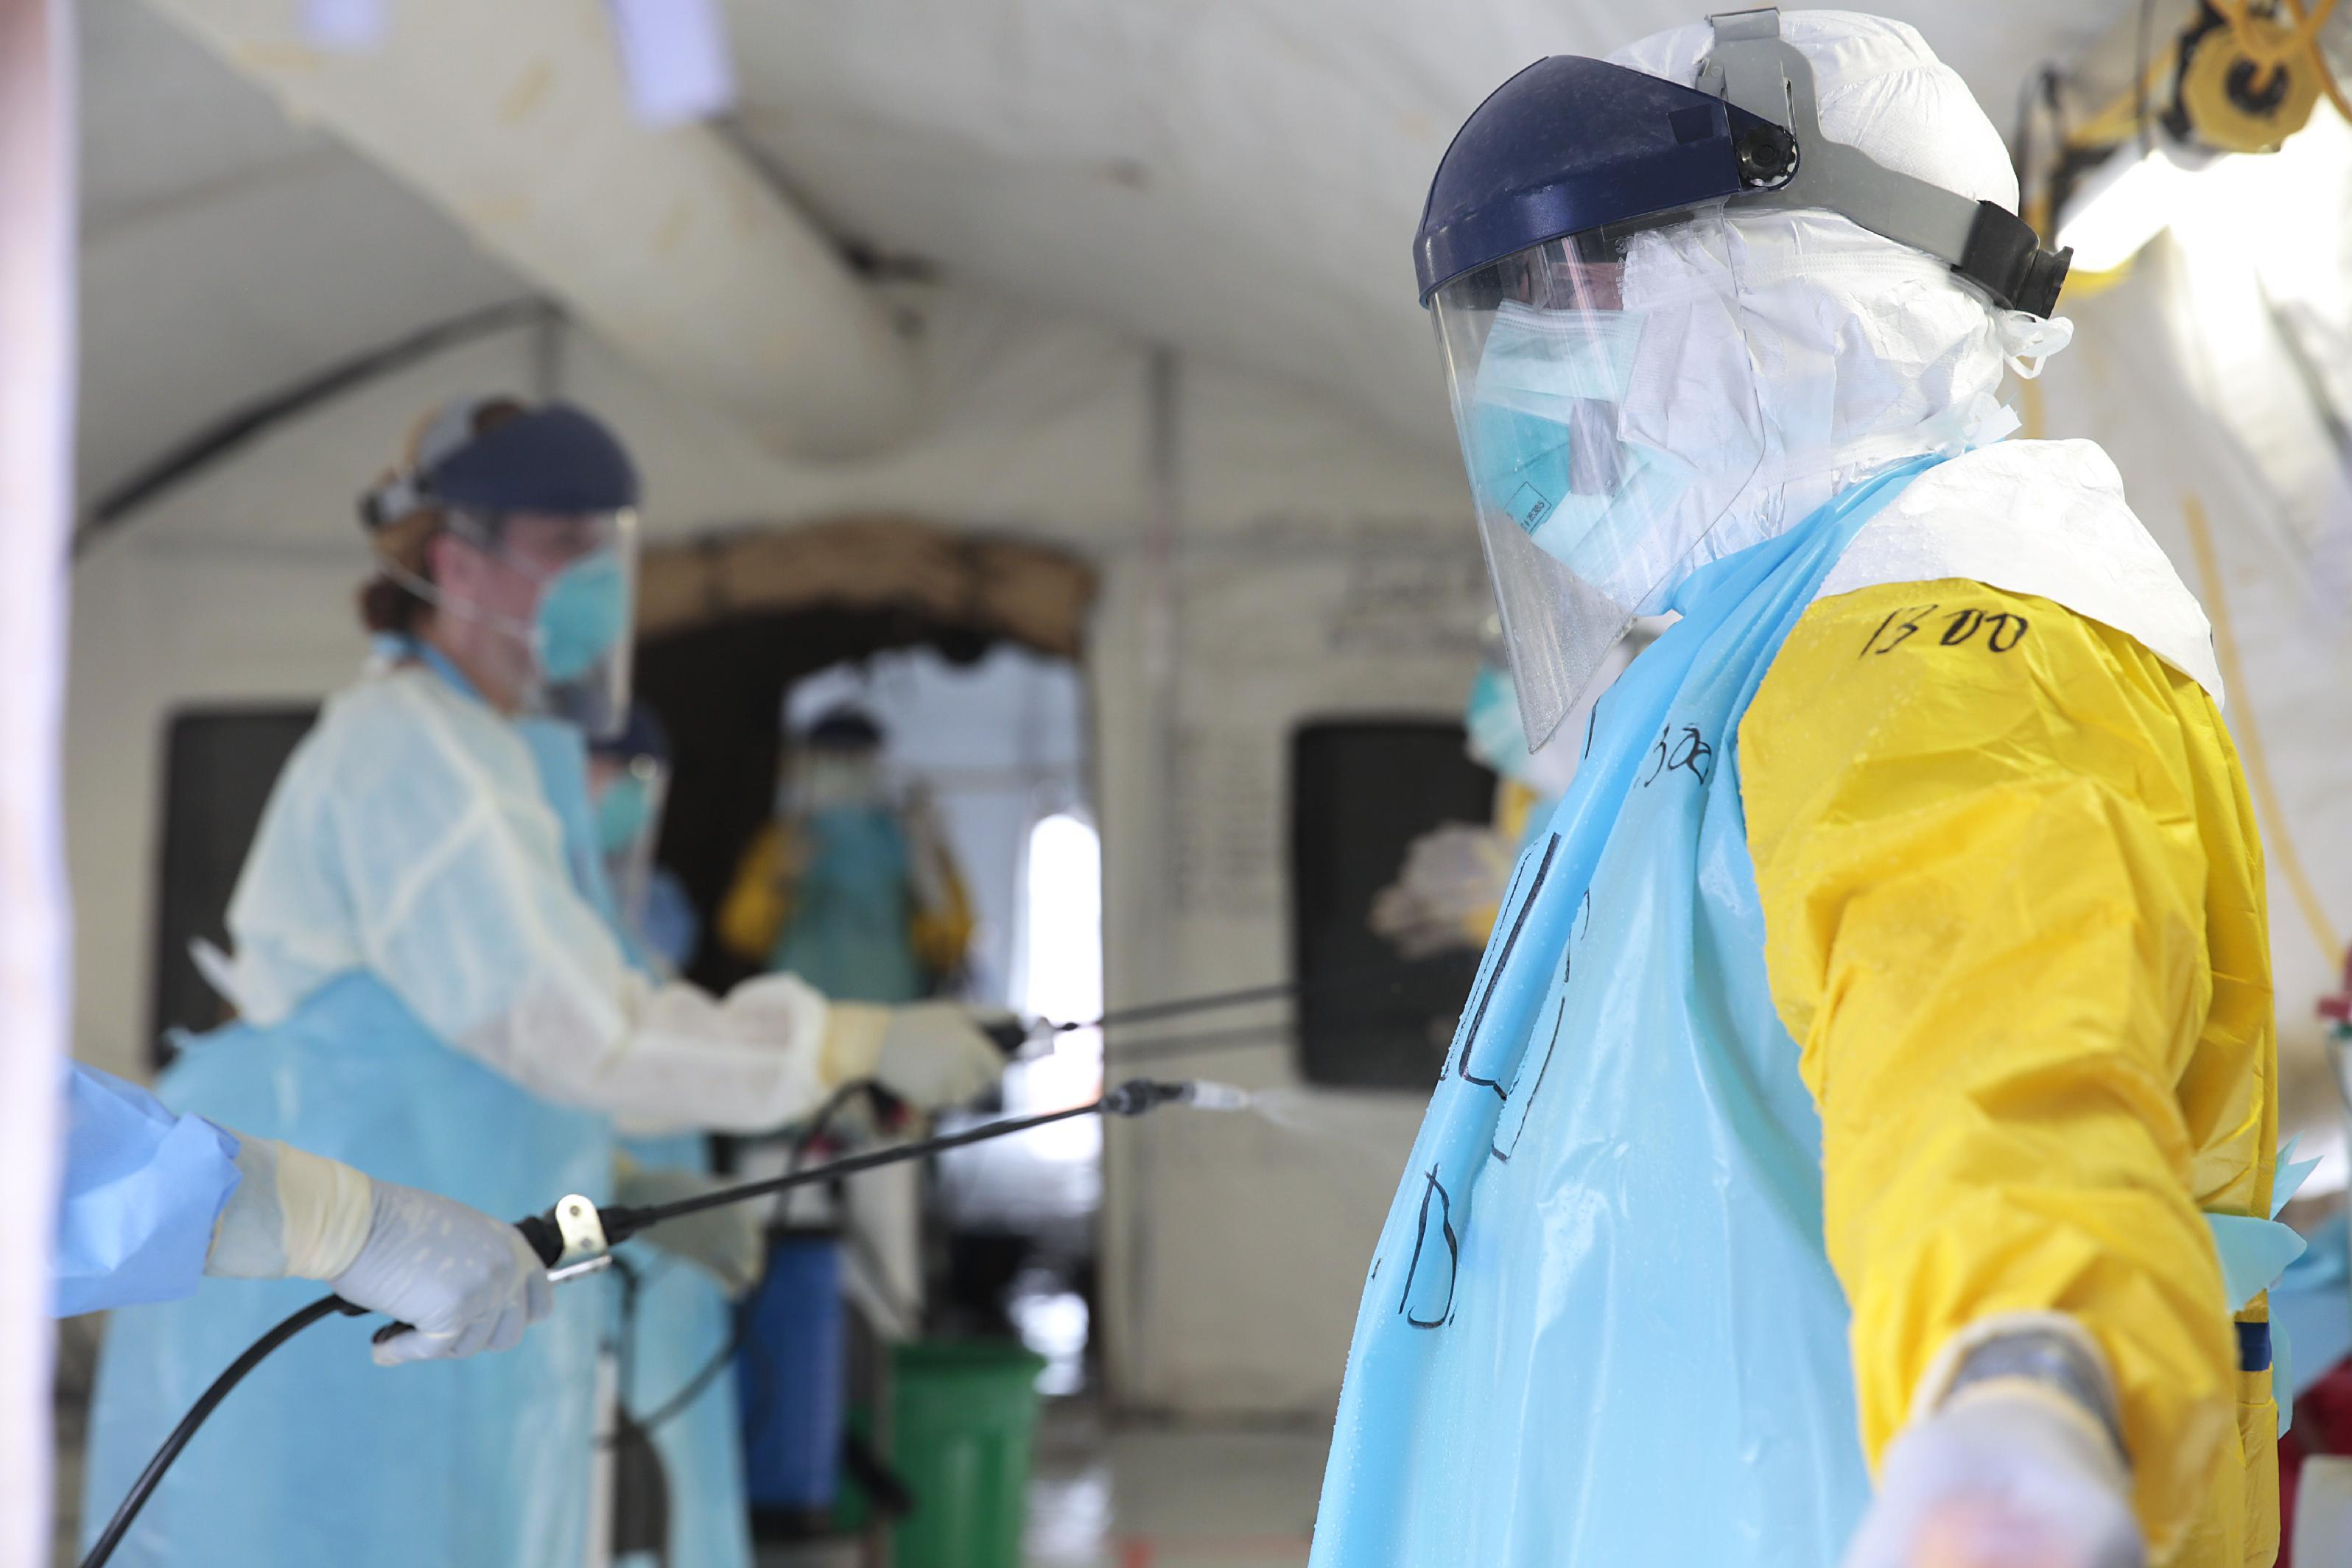 Medical workers treating their protective gear in an Ebola treatment centre in Monrovia, December 19, 2014